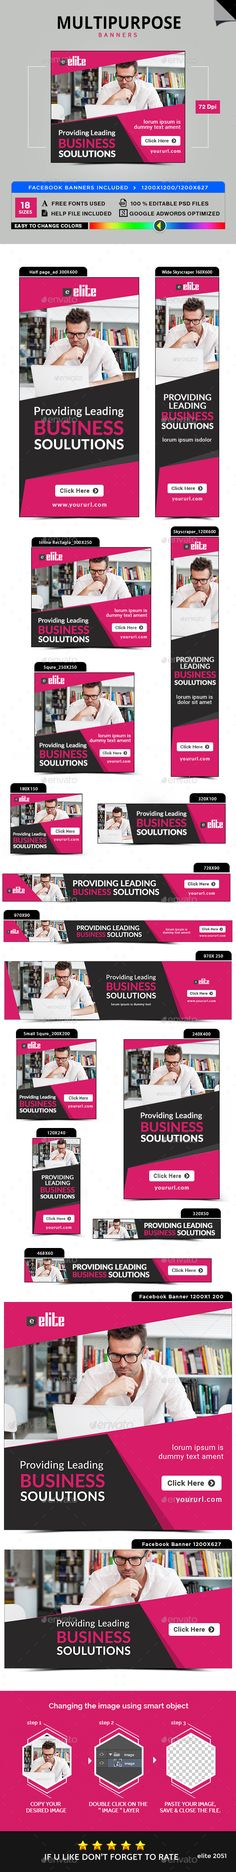 Multipurpose Banners Template PSD #ads